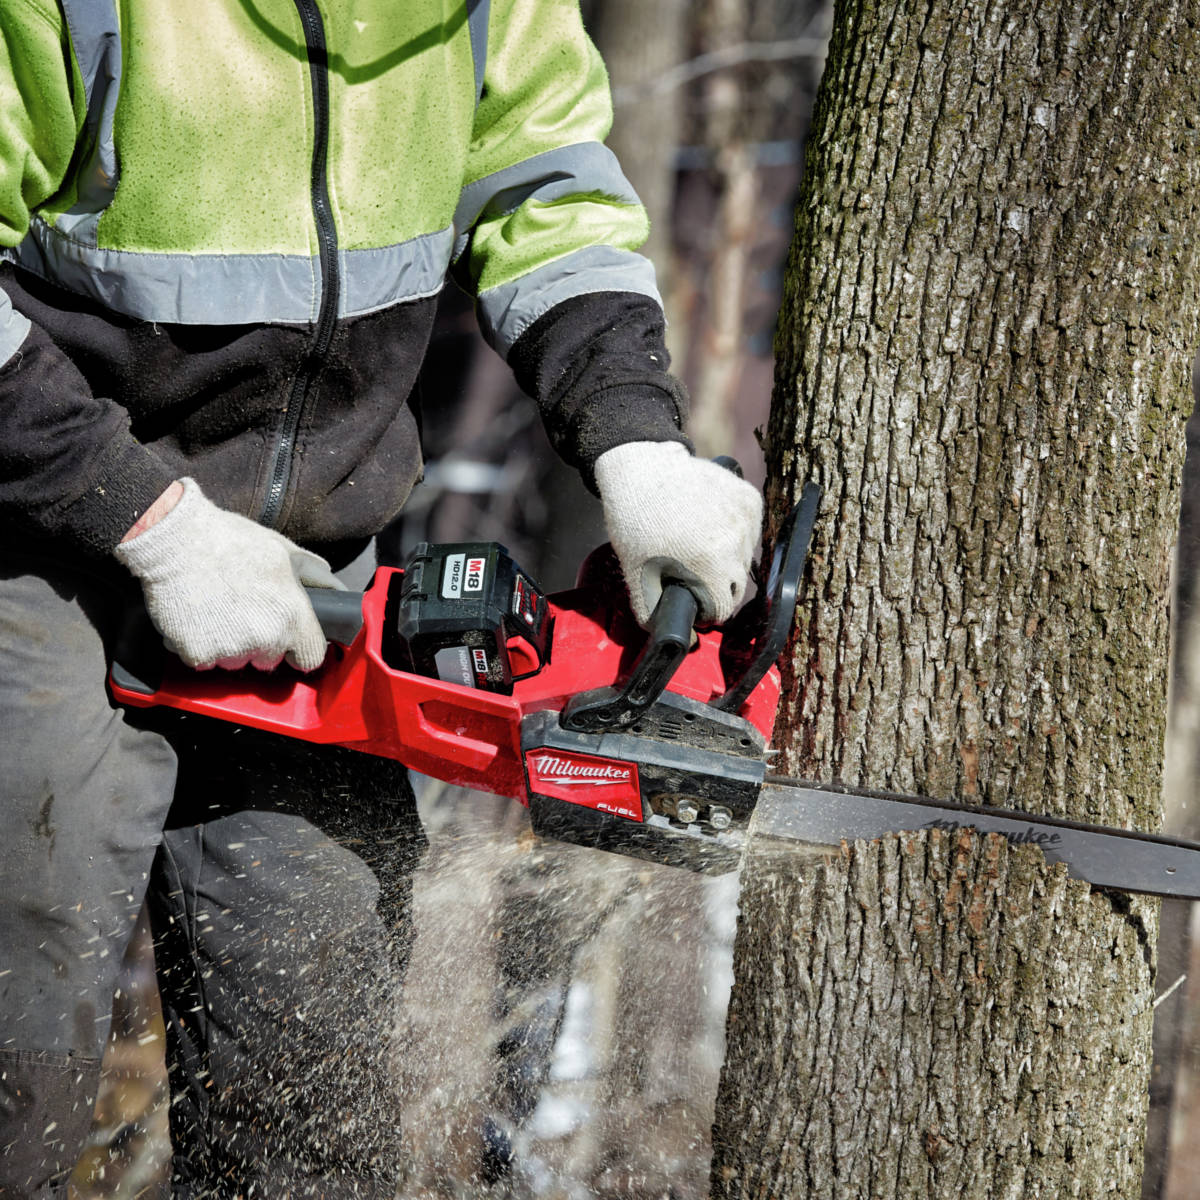 M18 FUEL 16 in. Chainsaw cuts faster than gas powered chainsaws